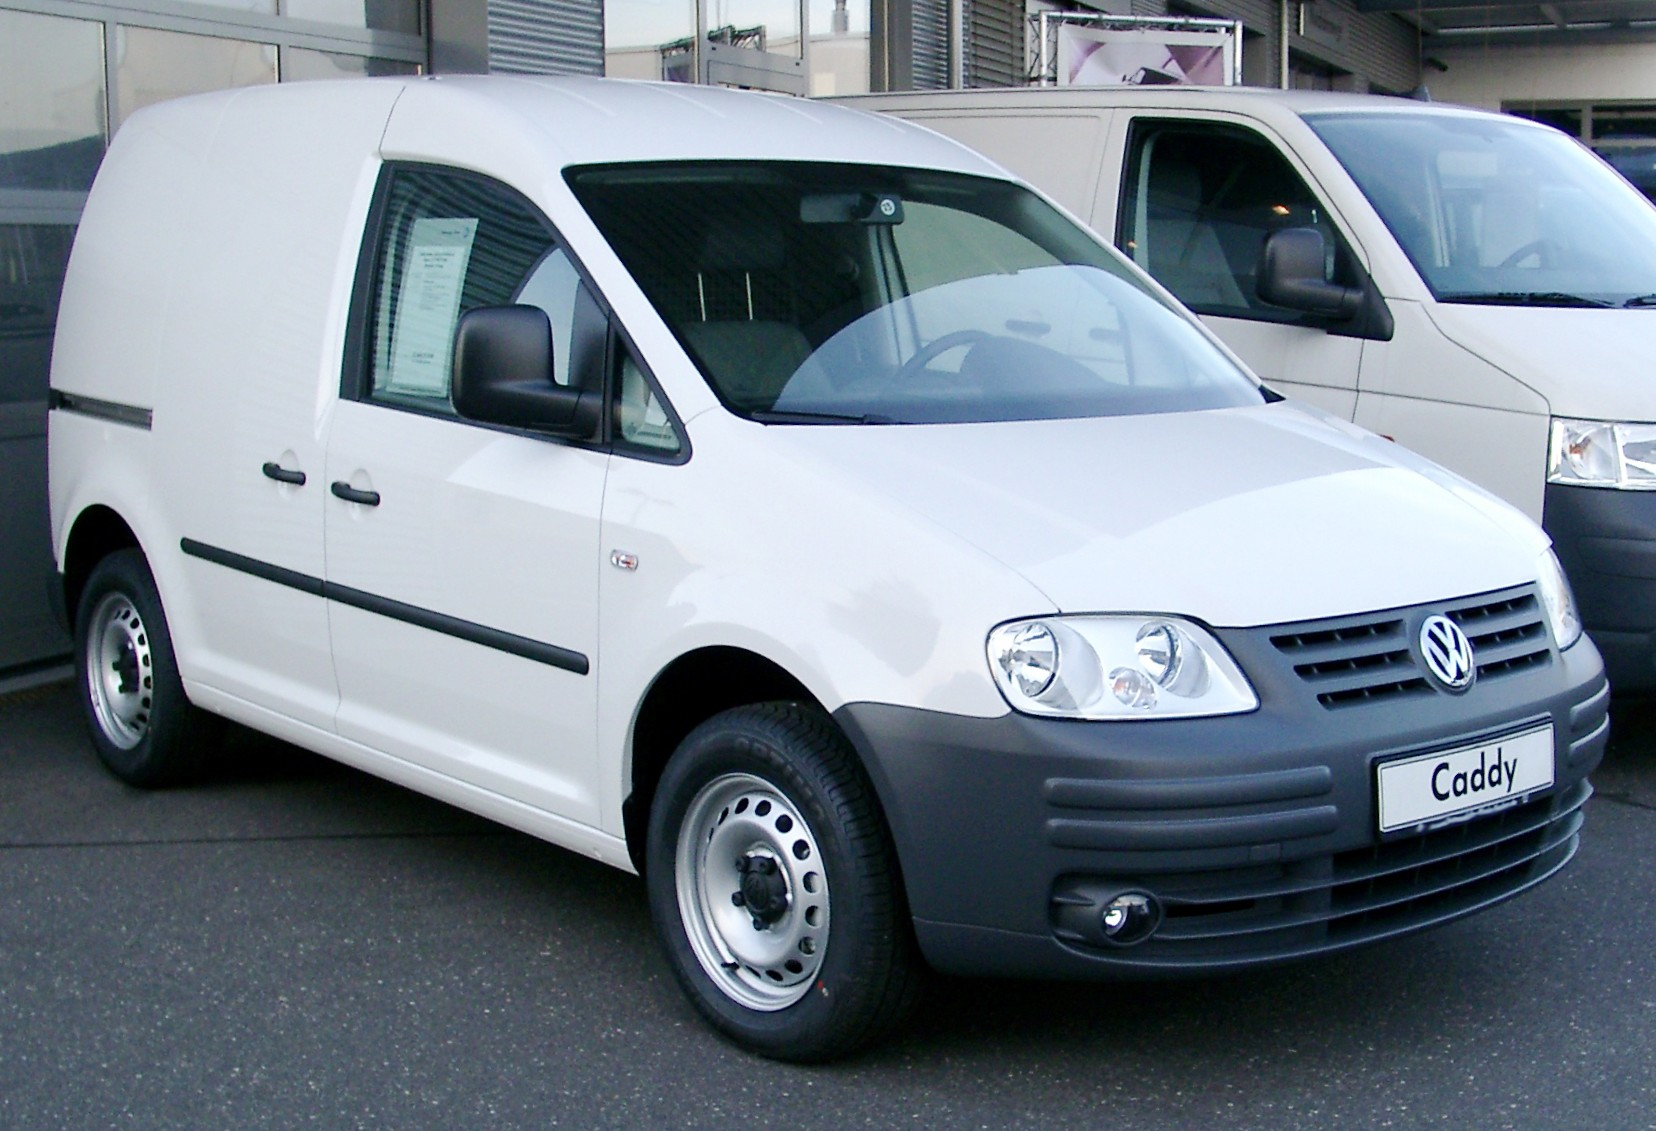 File:VW Caddy front 20080126.jpg - Wikimedia Commons